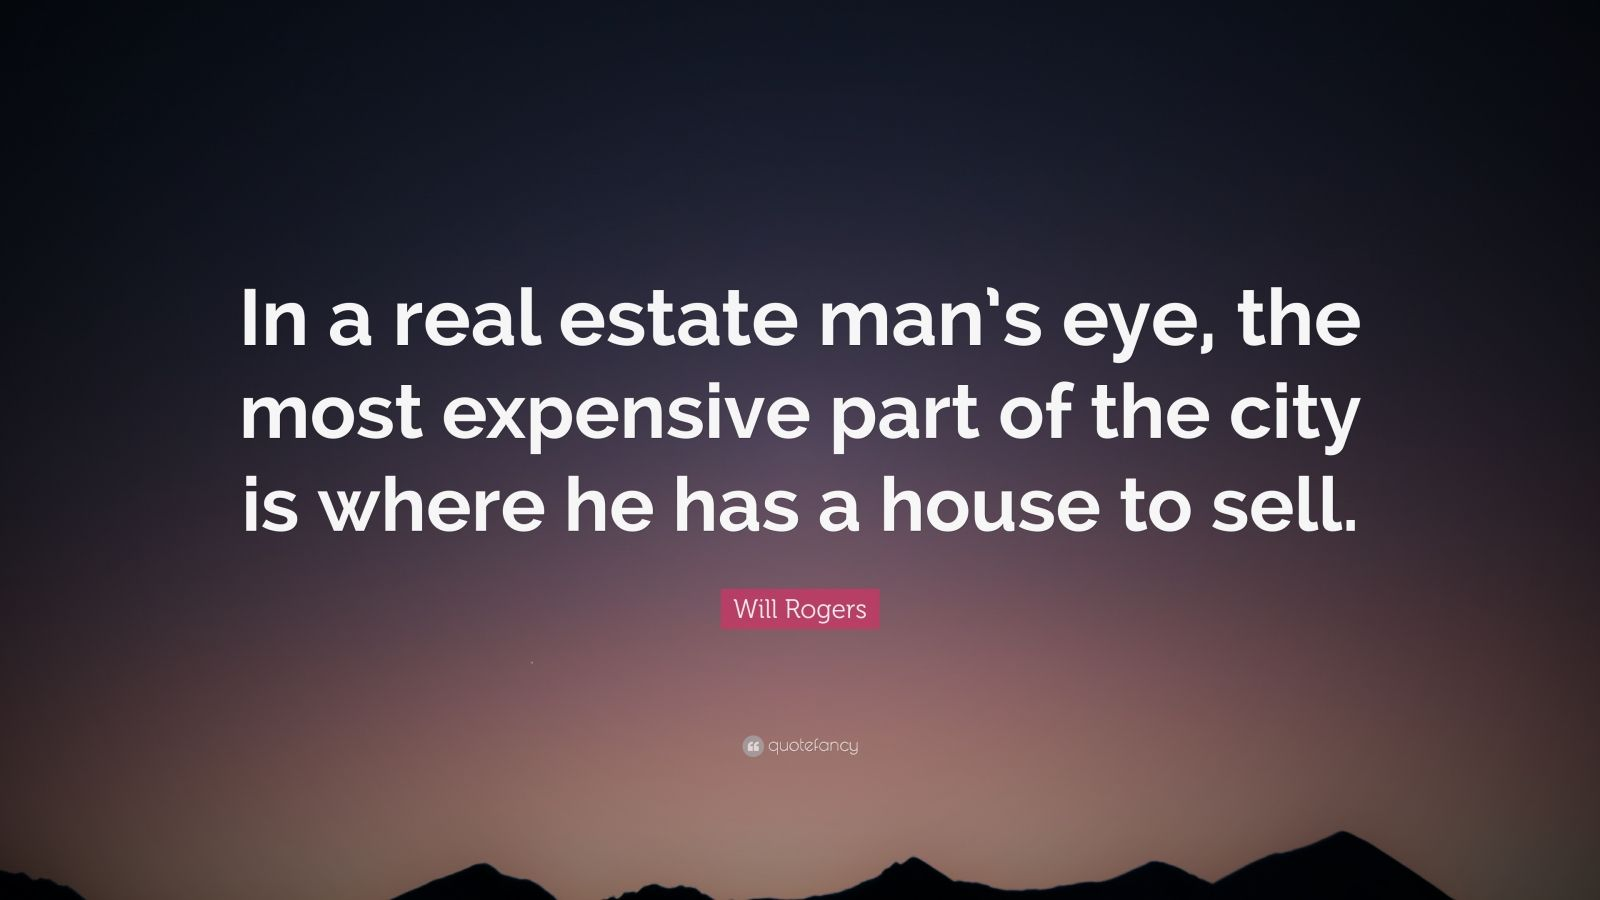 """Will Rogers Quote: """"In a real estate man's eye, the most expensive part of the city is where he has a house to sell."""""""